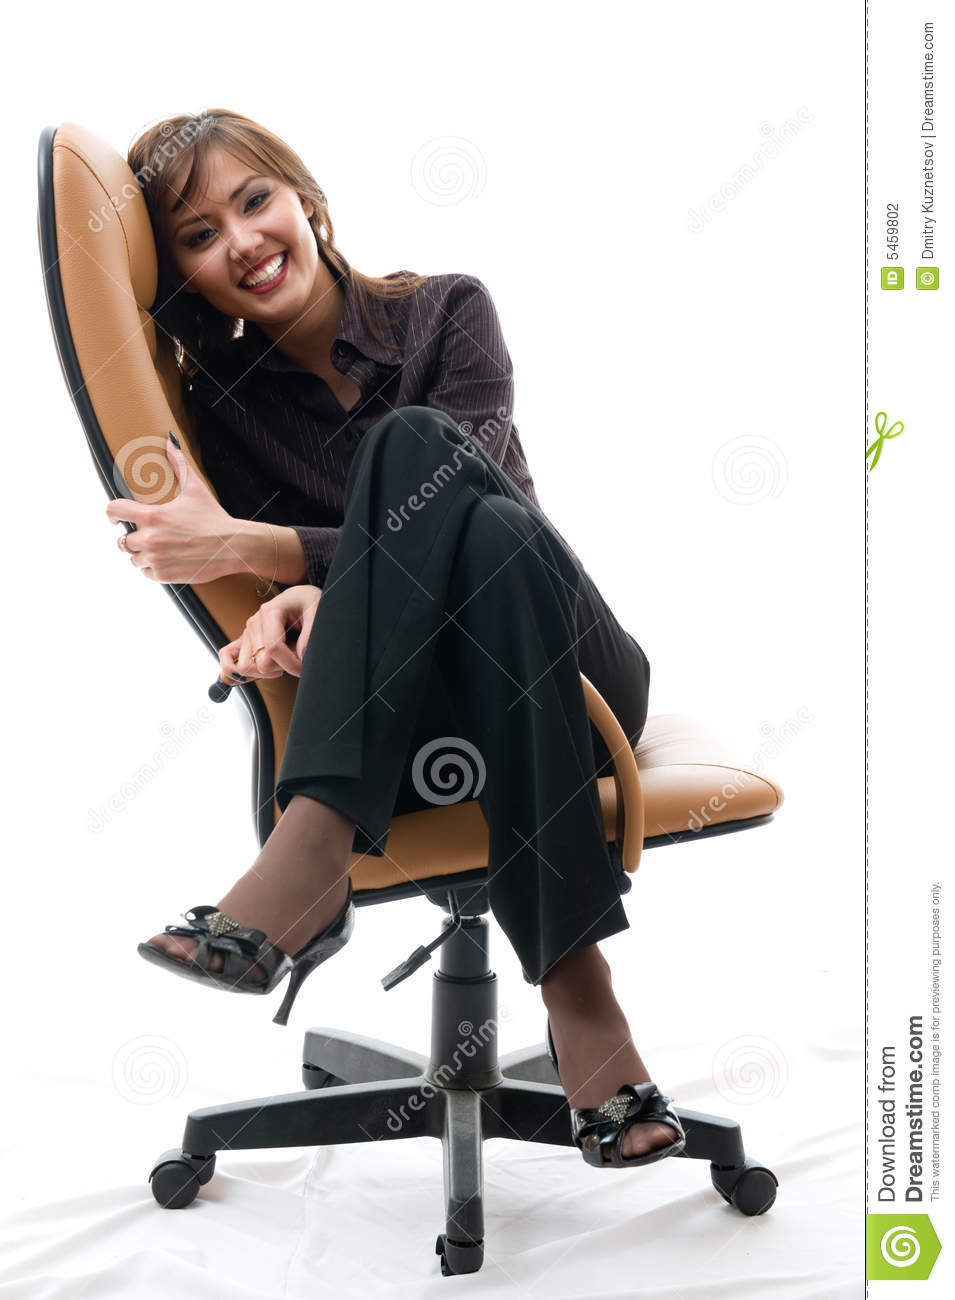 Woman Sitting In An Office Armchair Stock Photo - Image of ...